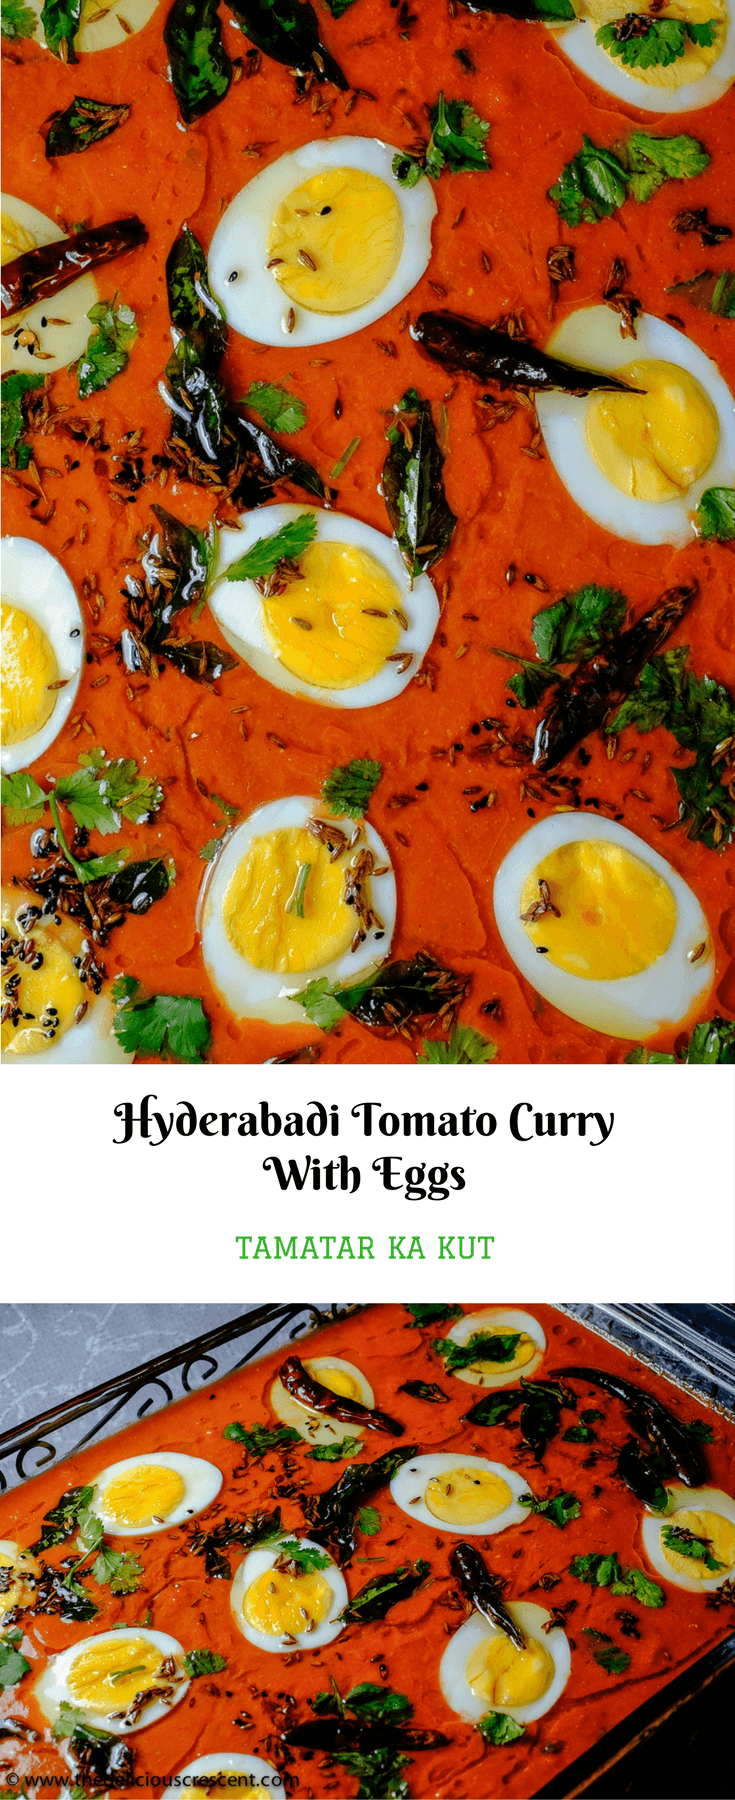 Hyderabadi Tomato Curry (Tamatar Ka Kut) is a delicious Indian dish with eggs in a spicy and saucy tomato gravy and is low carb, gluten free, antioxidant rich and with good protein. It is also easy to make.